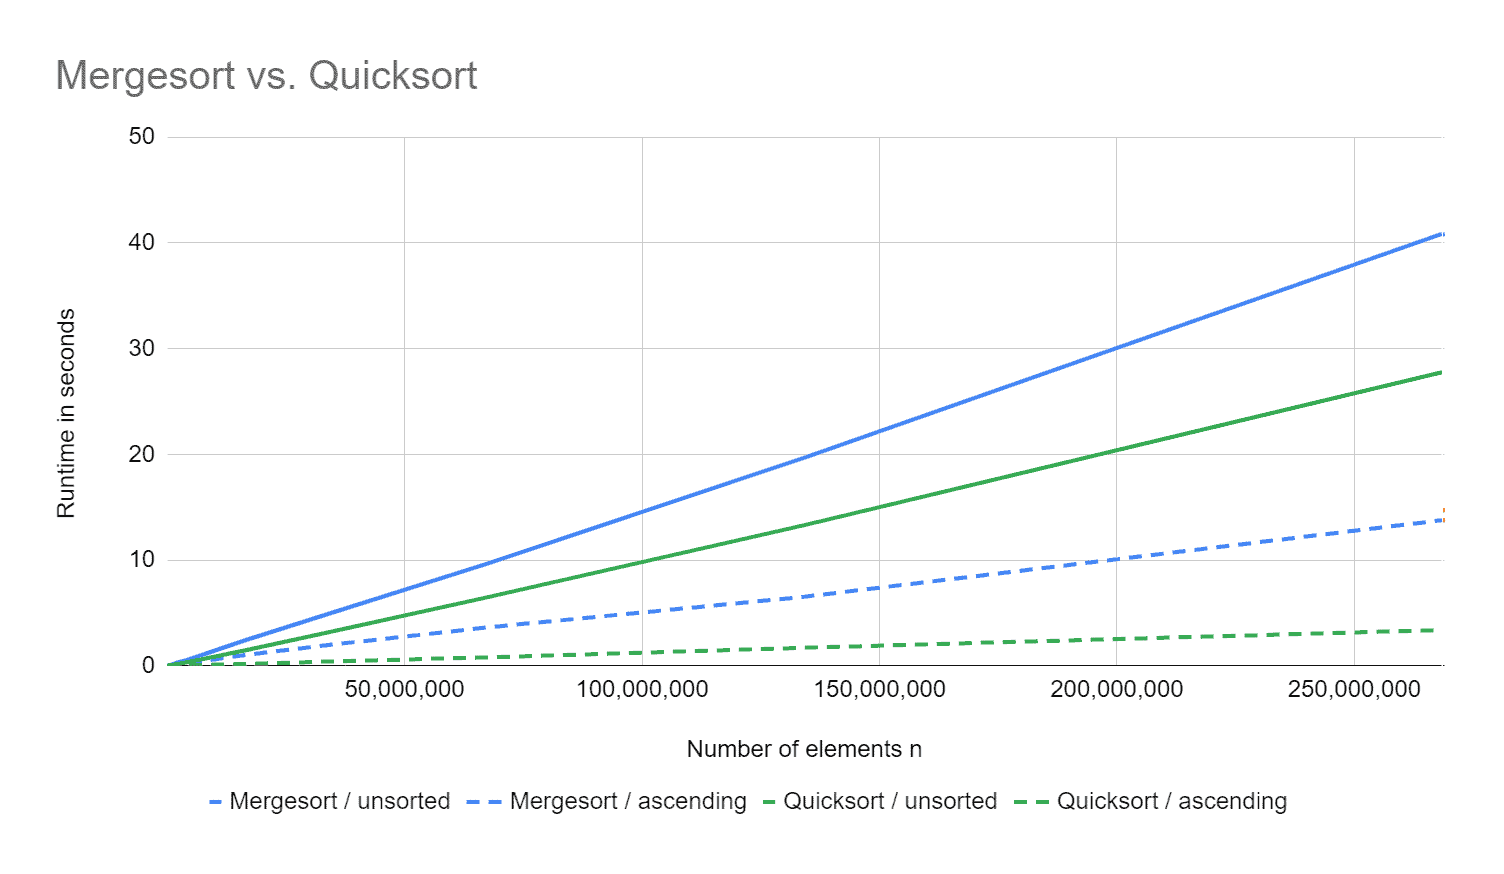 Mergesort vs. Quicksort: Runtime for sorted and unsorted elements